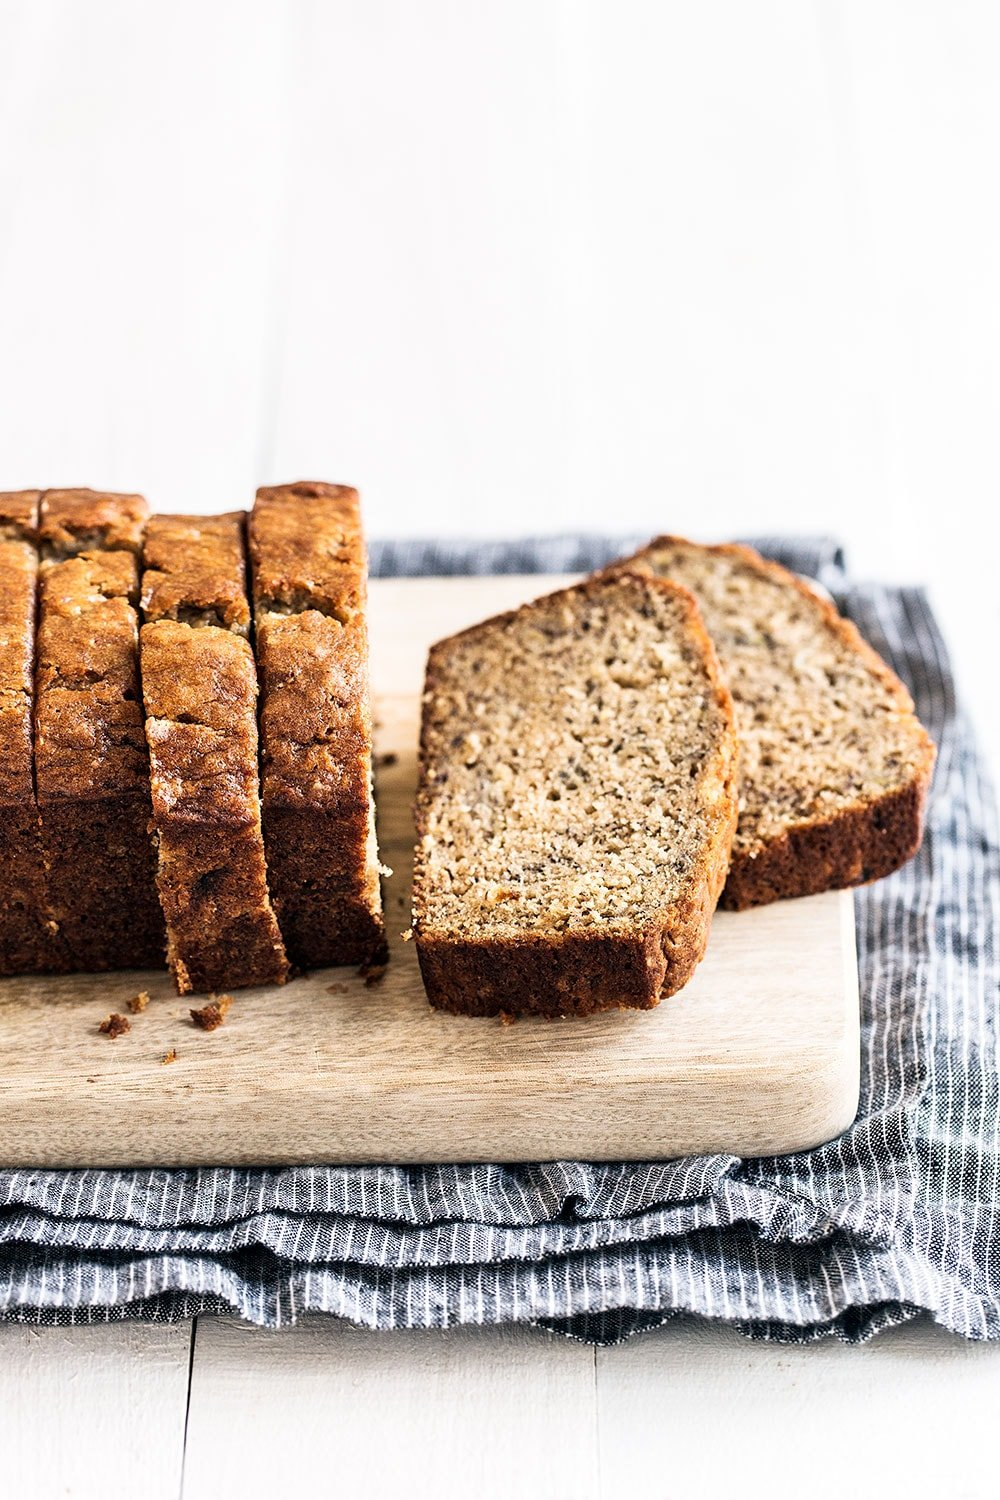 Family friendly banana bread recipe everyone will love!